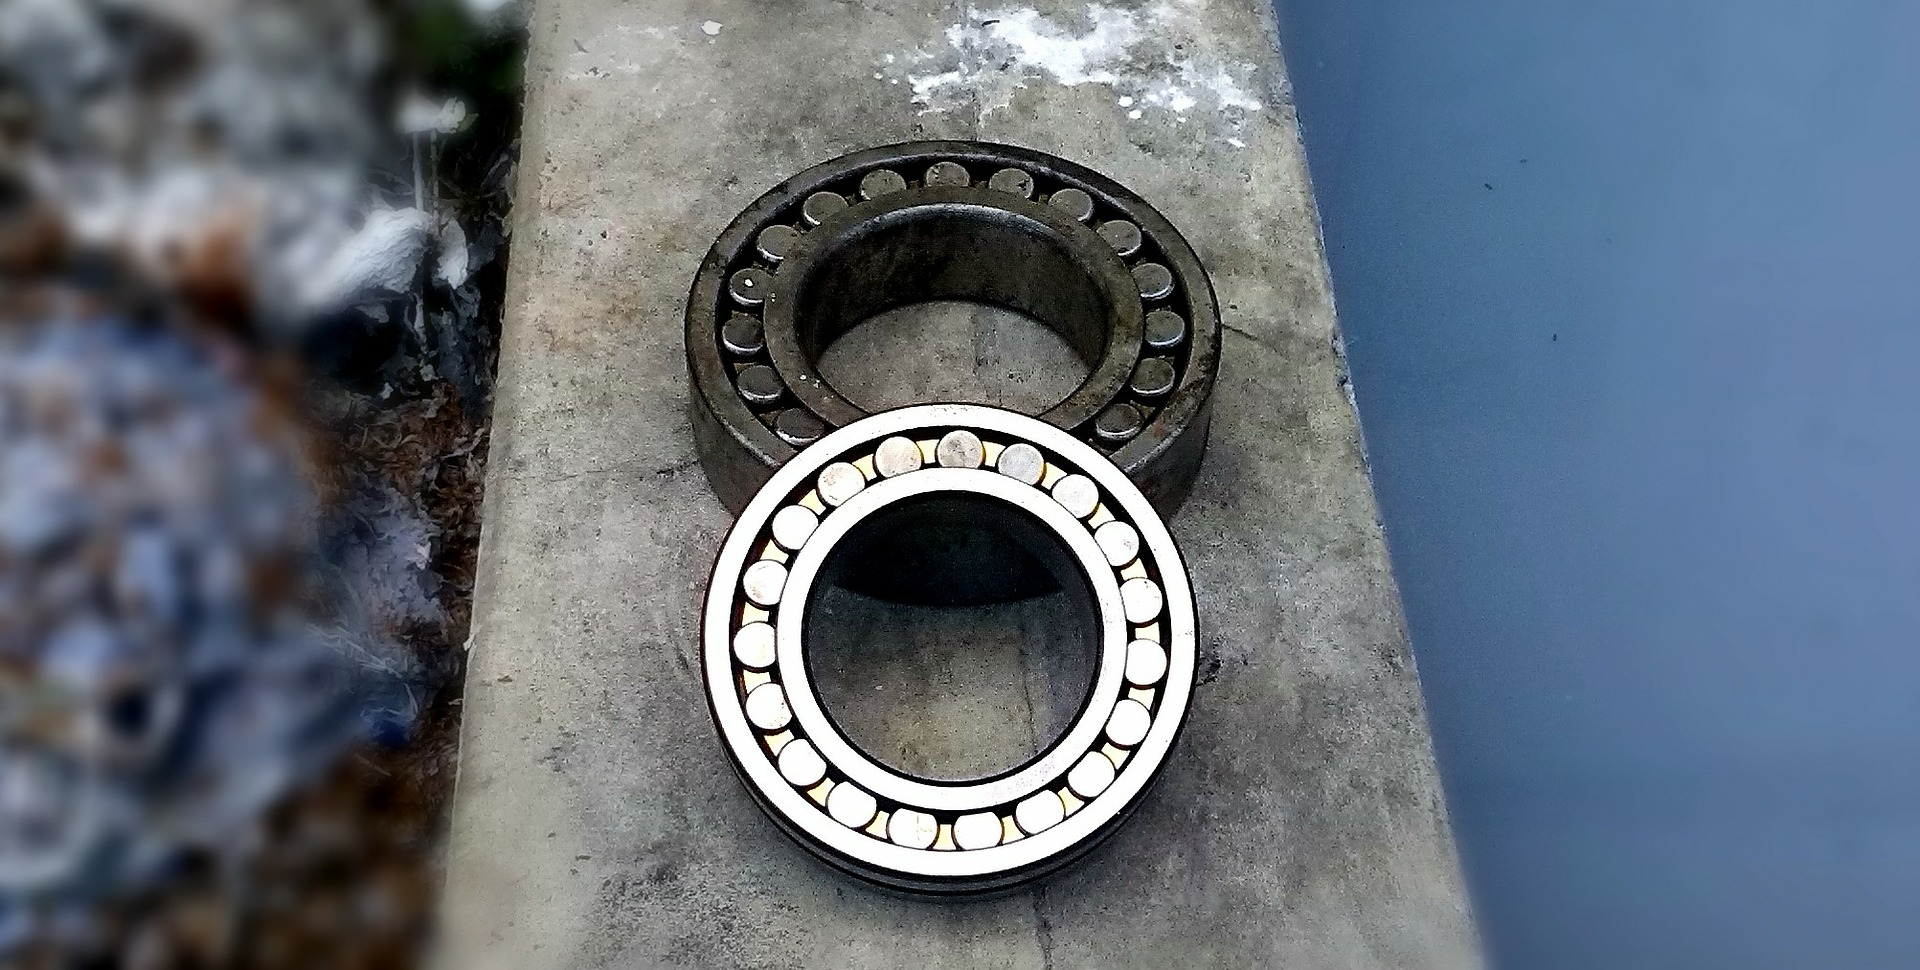 How to Save Money Through Bearing Refurbishment Without Risking Damage